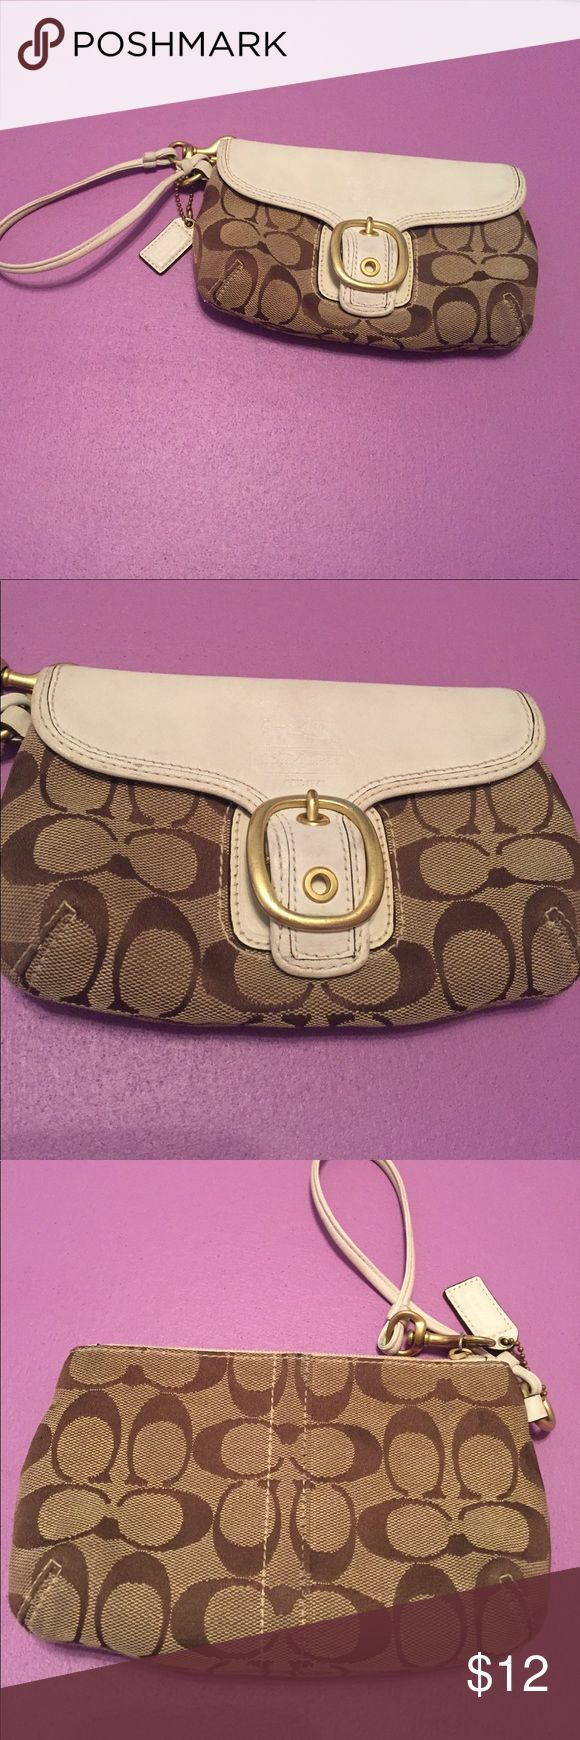 Coach wristlet! Classic Coach wristlet! Two-toned brown and and tan coach lettering and white leather with a gold buckle detail. There's two pockets. A fair amount of ware and tear, but the outside still looks good! Coach Bags Clutches & Wristlets